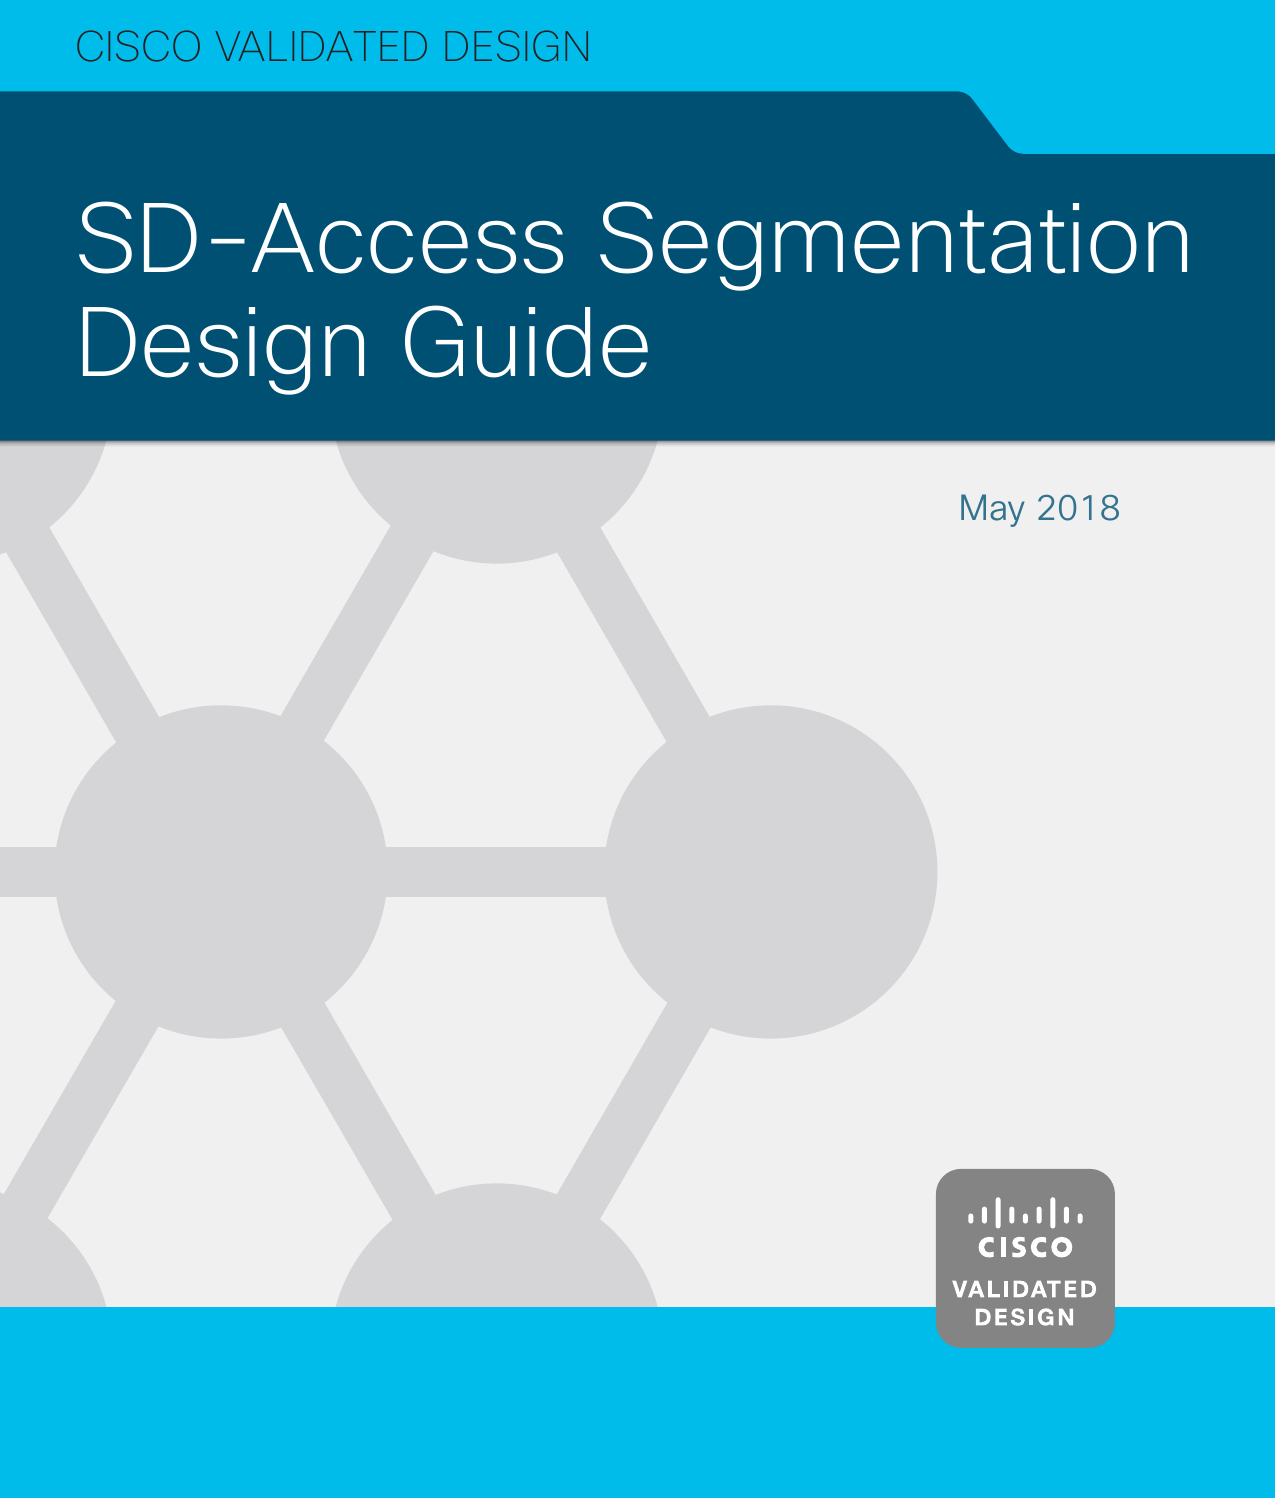 CVD Software Defined Access Segmentation Design Guide May